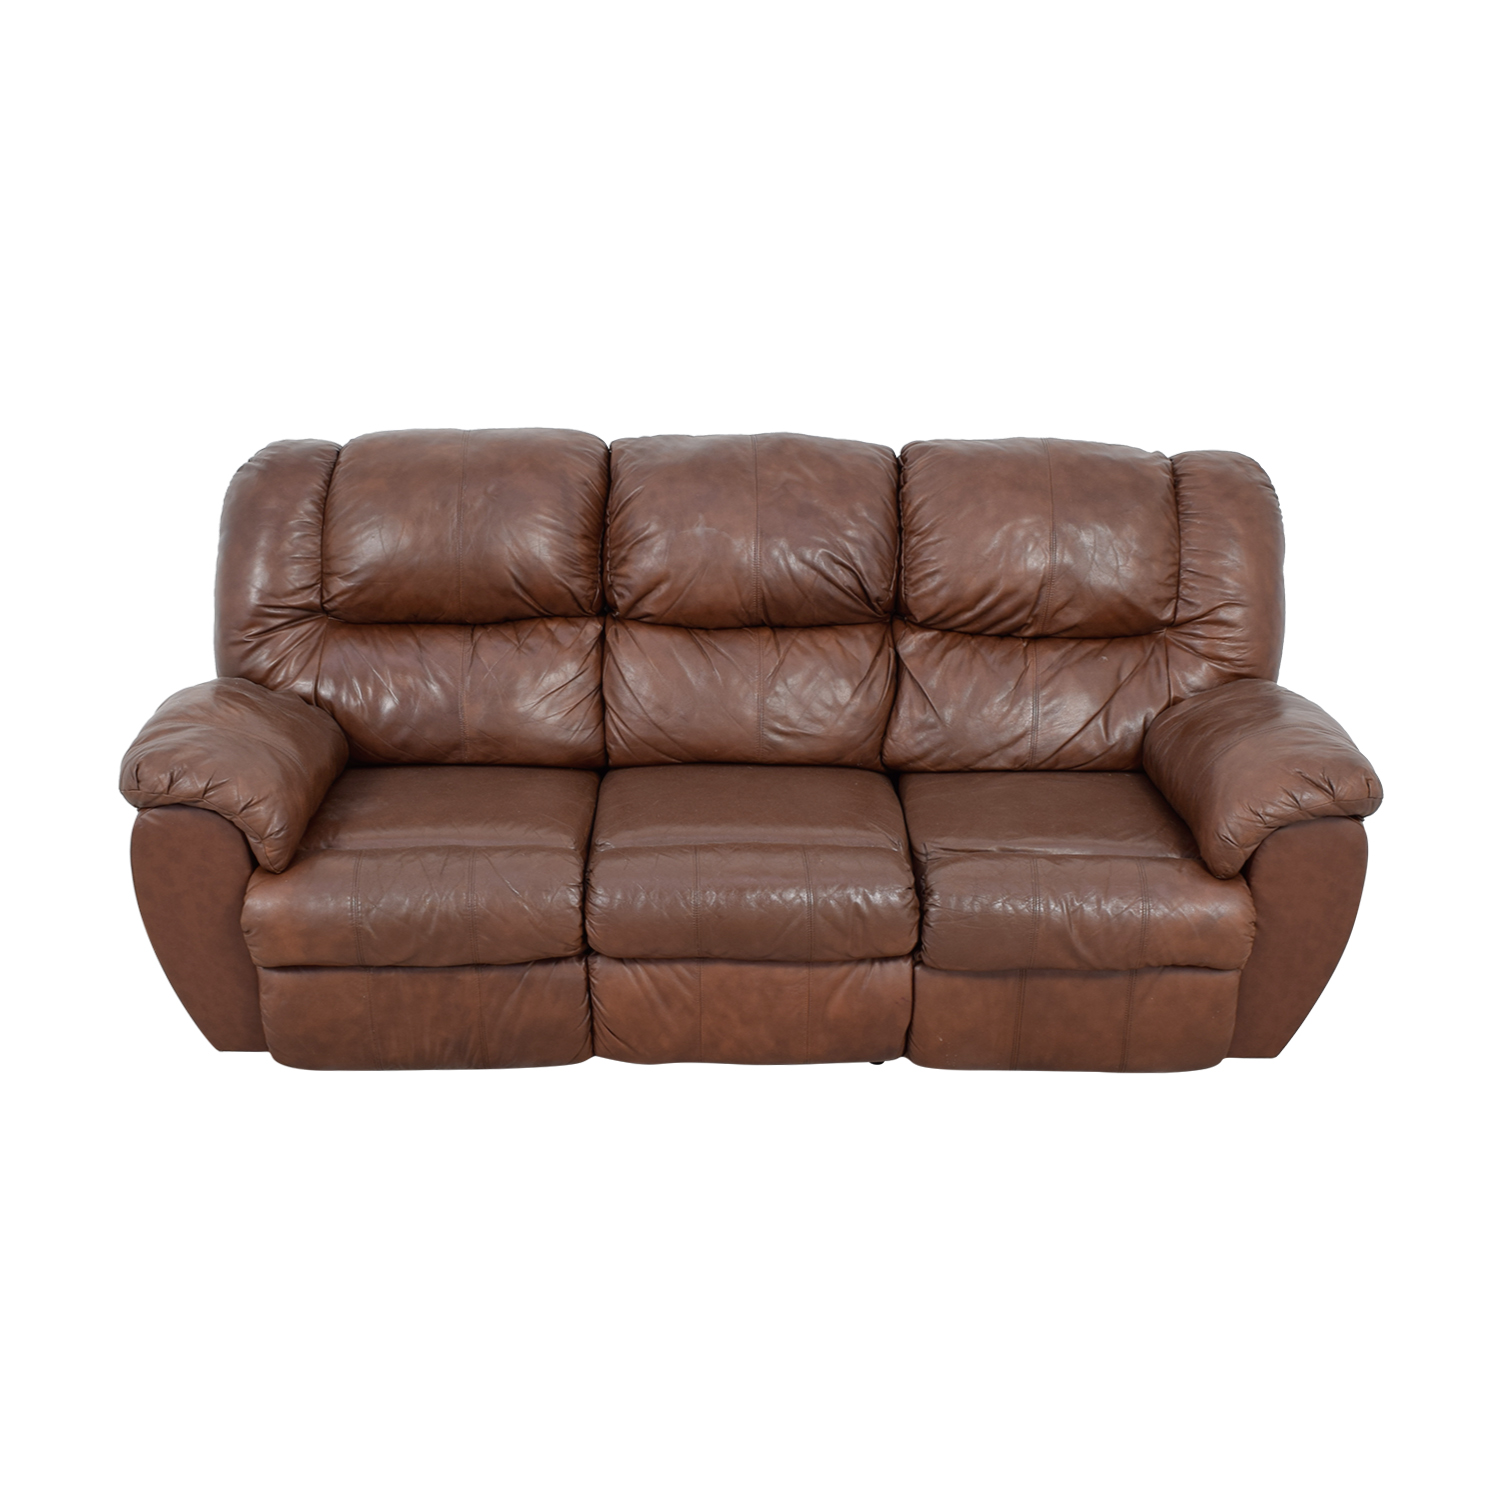 sofitalia leather sofa dust cover fabric 64 off dark brown armchair